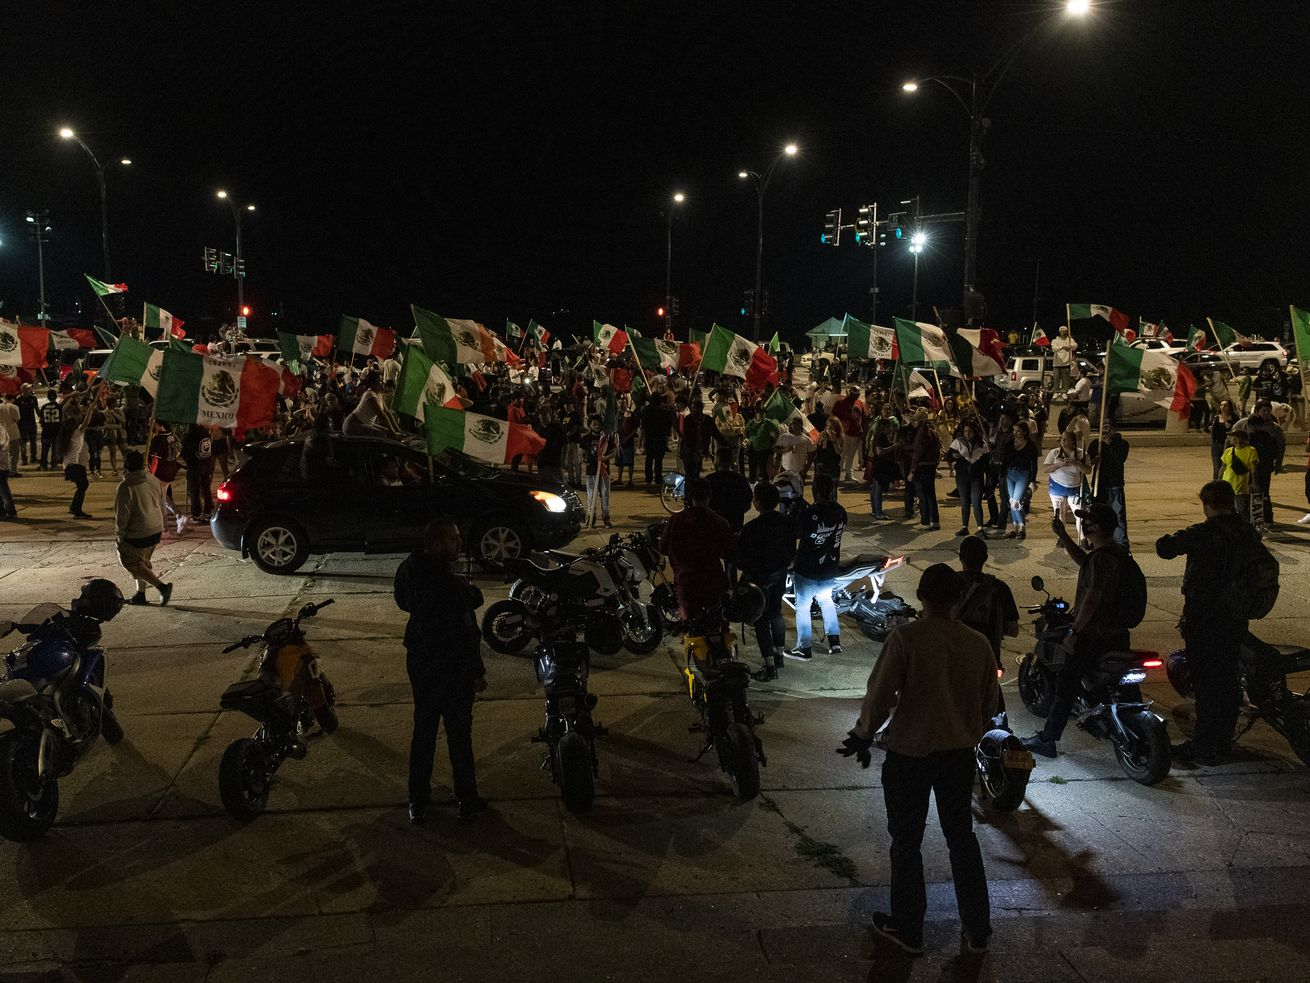 People dance and party on Lake Shore Drive near Buckingham Fountain, as hundreds celebrate Mexico's Independence Day, Wednesday, Sept. 16, 2020.